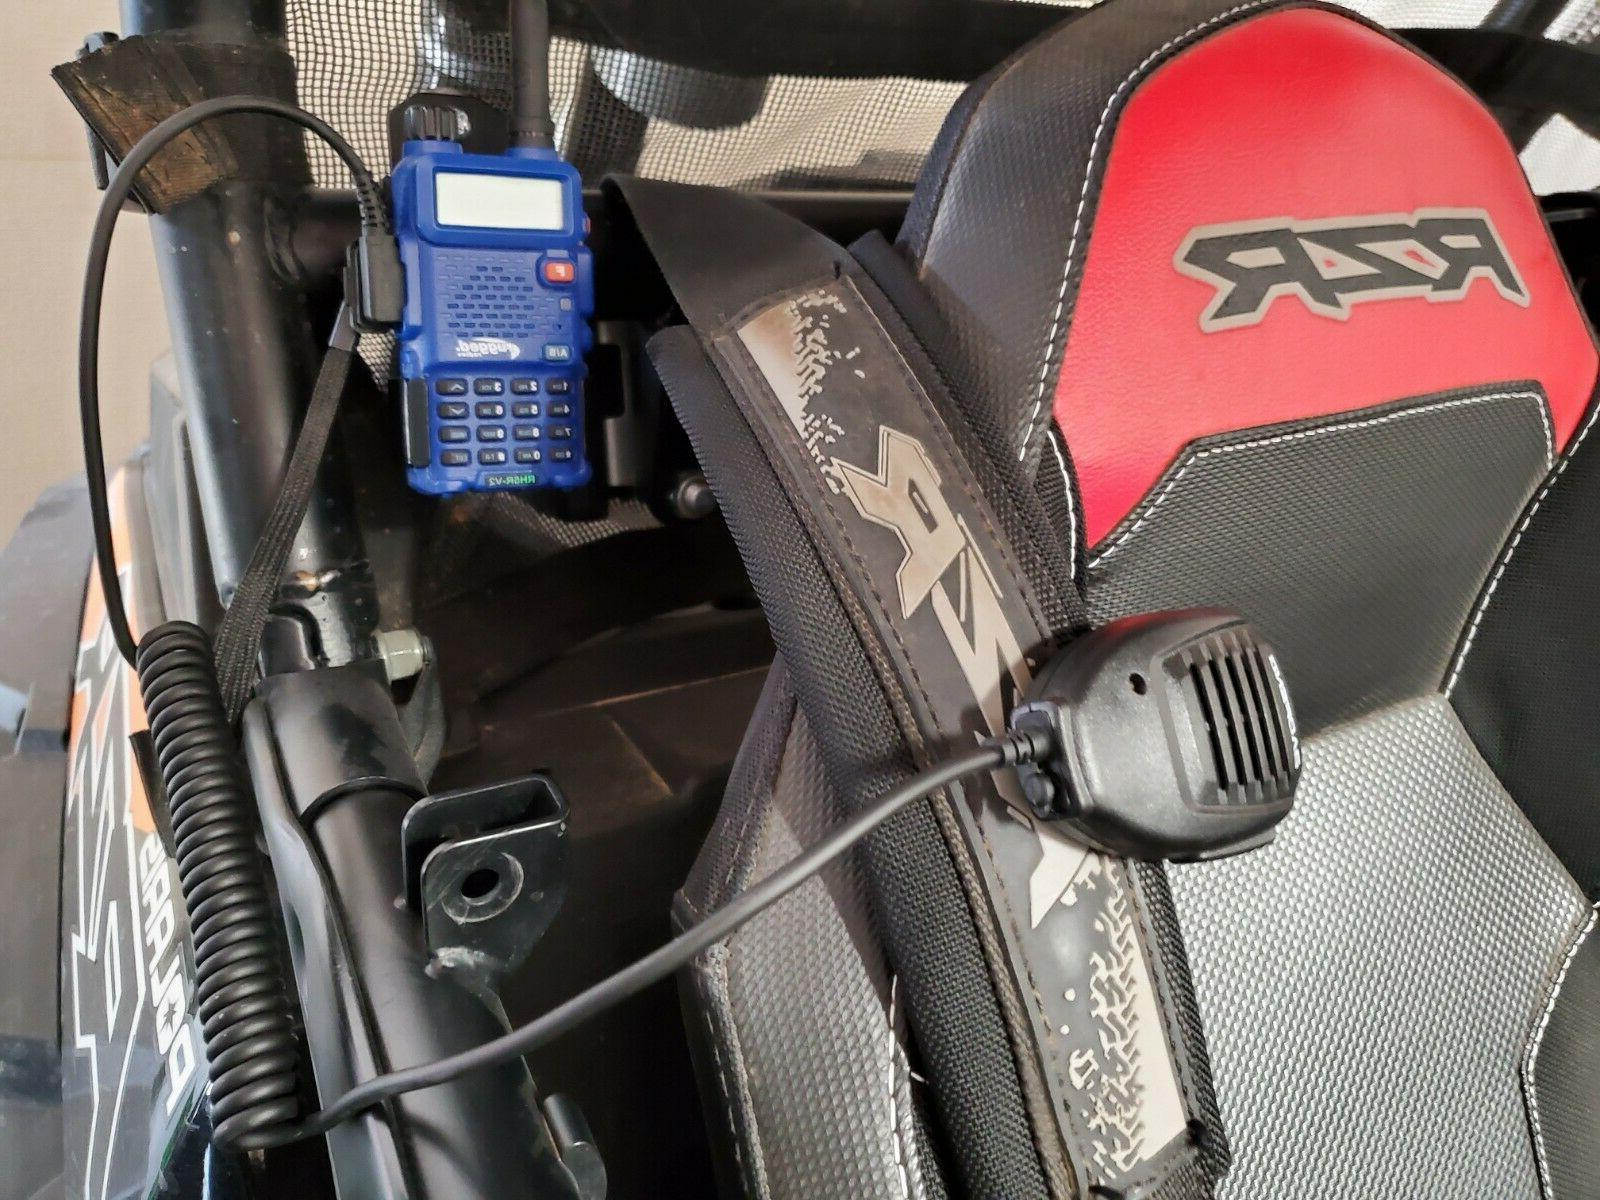 Baofeng radio mount bracket Jeep UV5XP and Radio